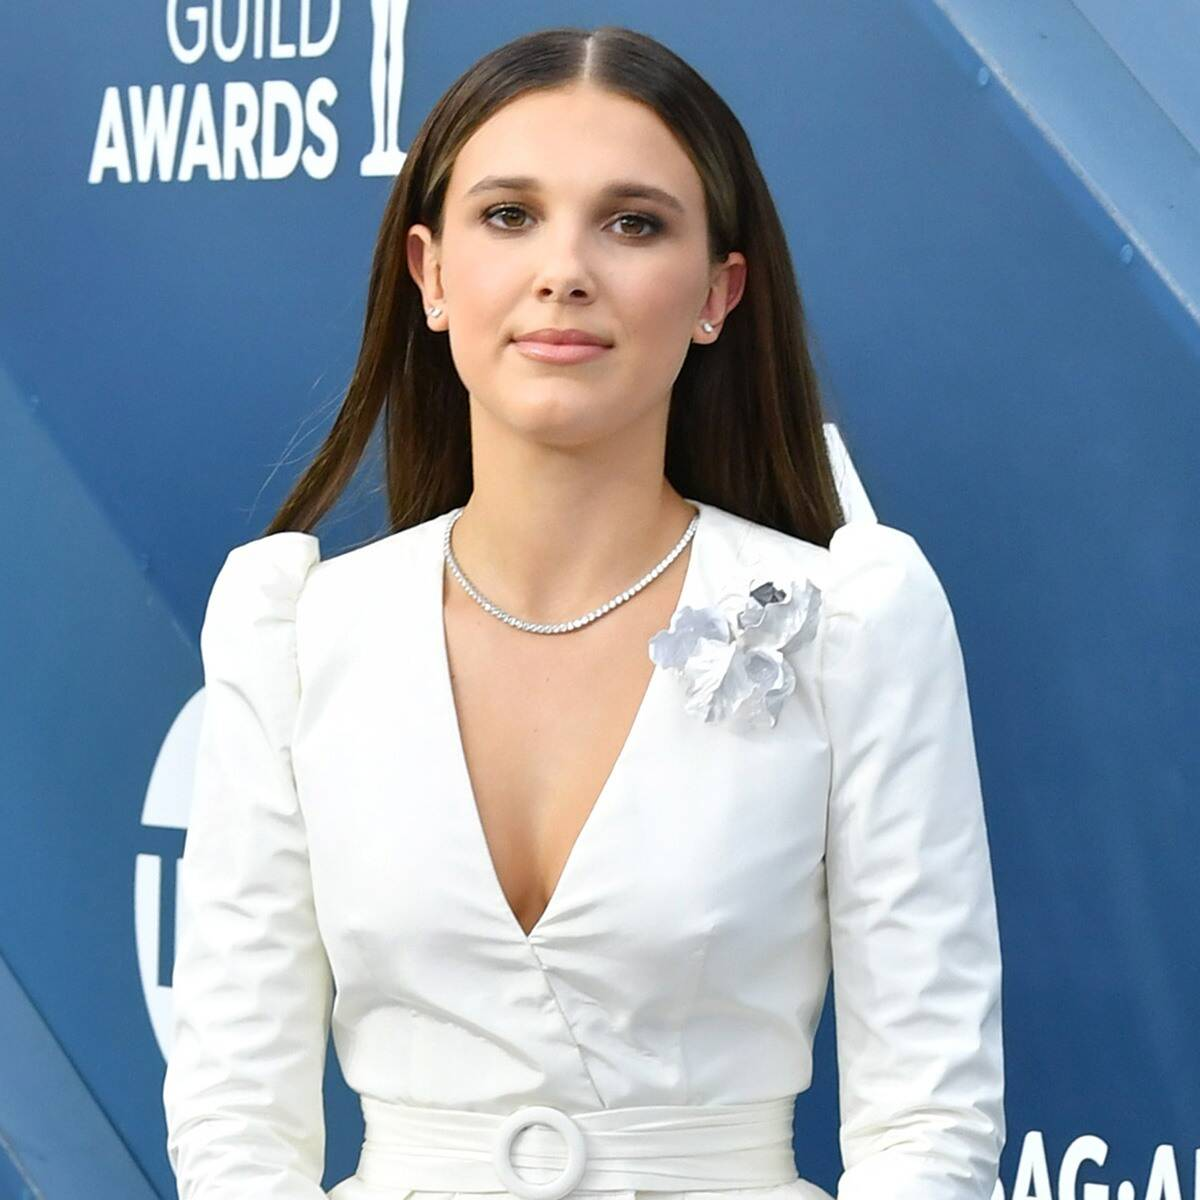 Millie Bobby Brown Biography